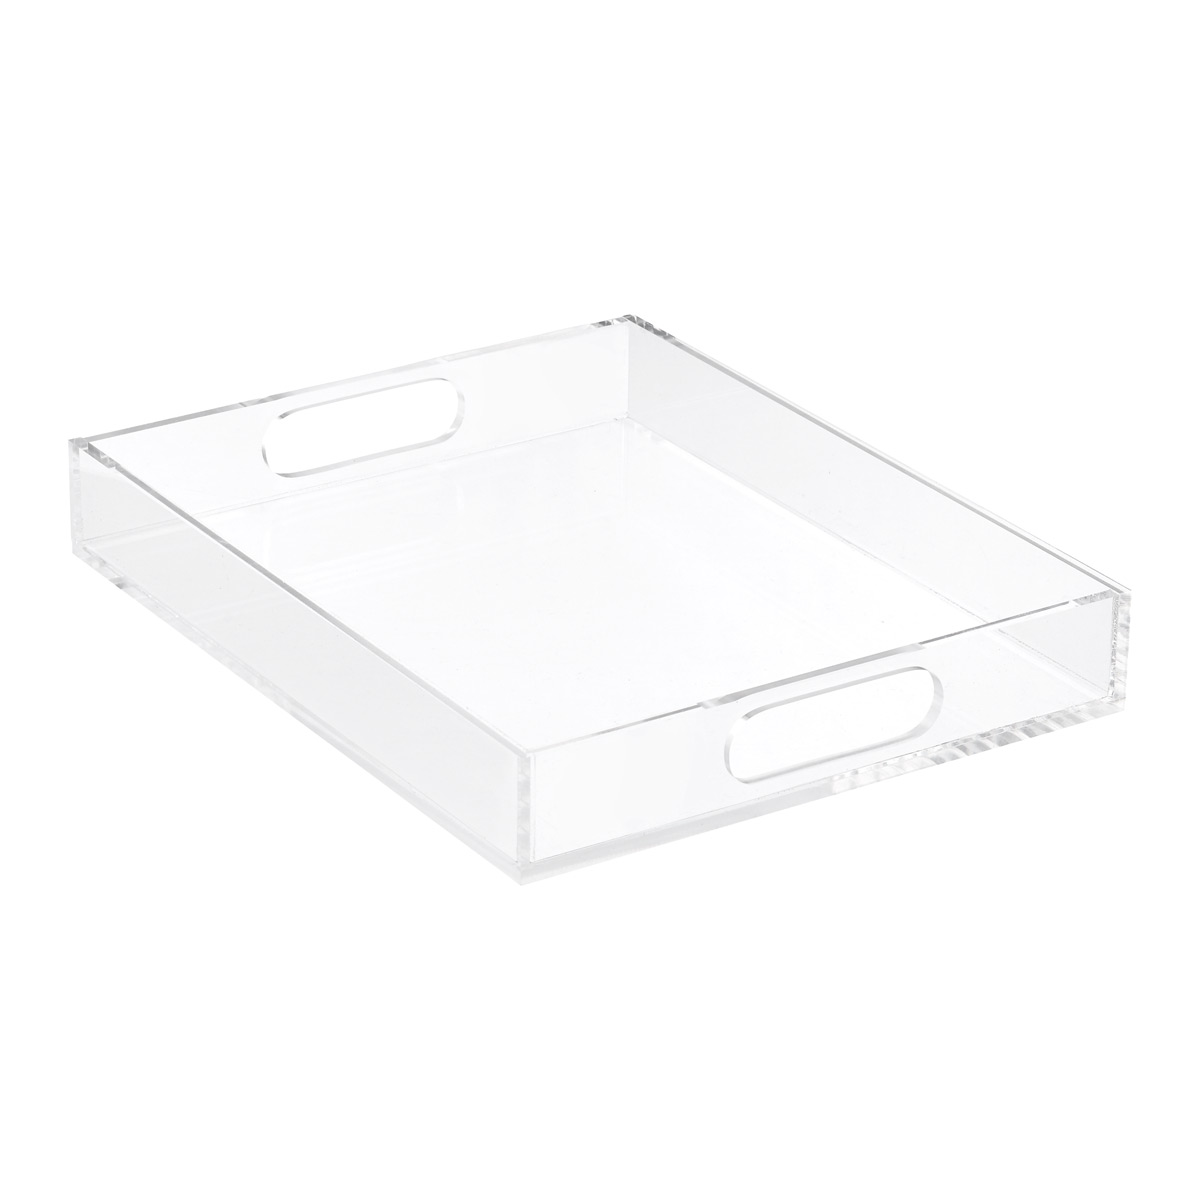 Large Premium Acrylic Paper Tray